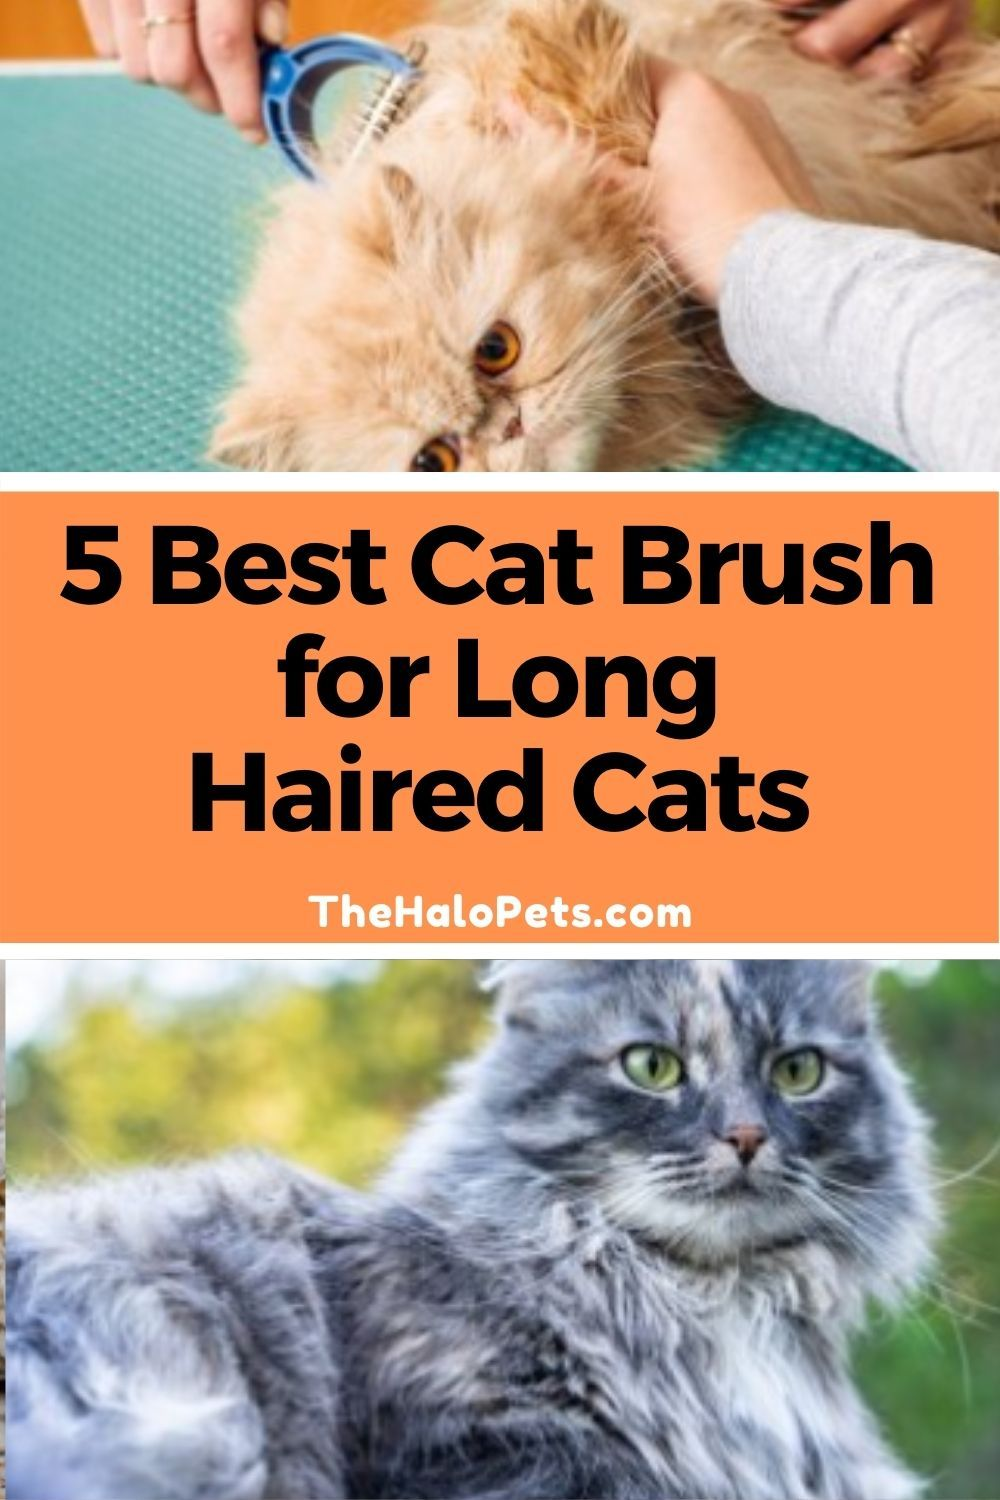 ccb5d990fa8473d2bf185f181c157b25 - How To Get Knots Out Of A Long Haired Cat